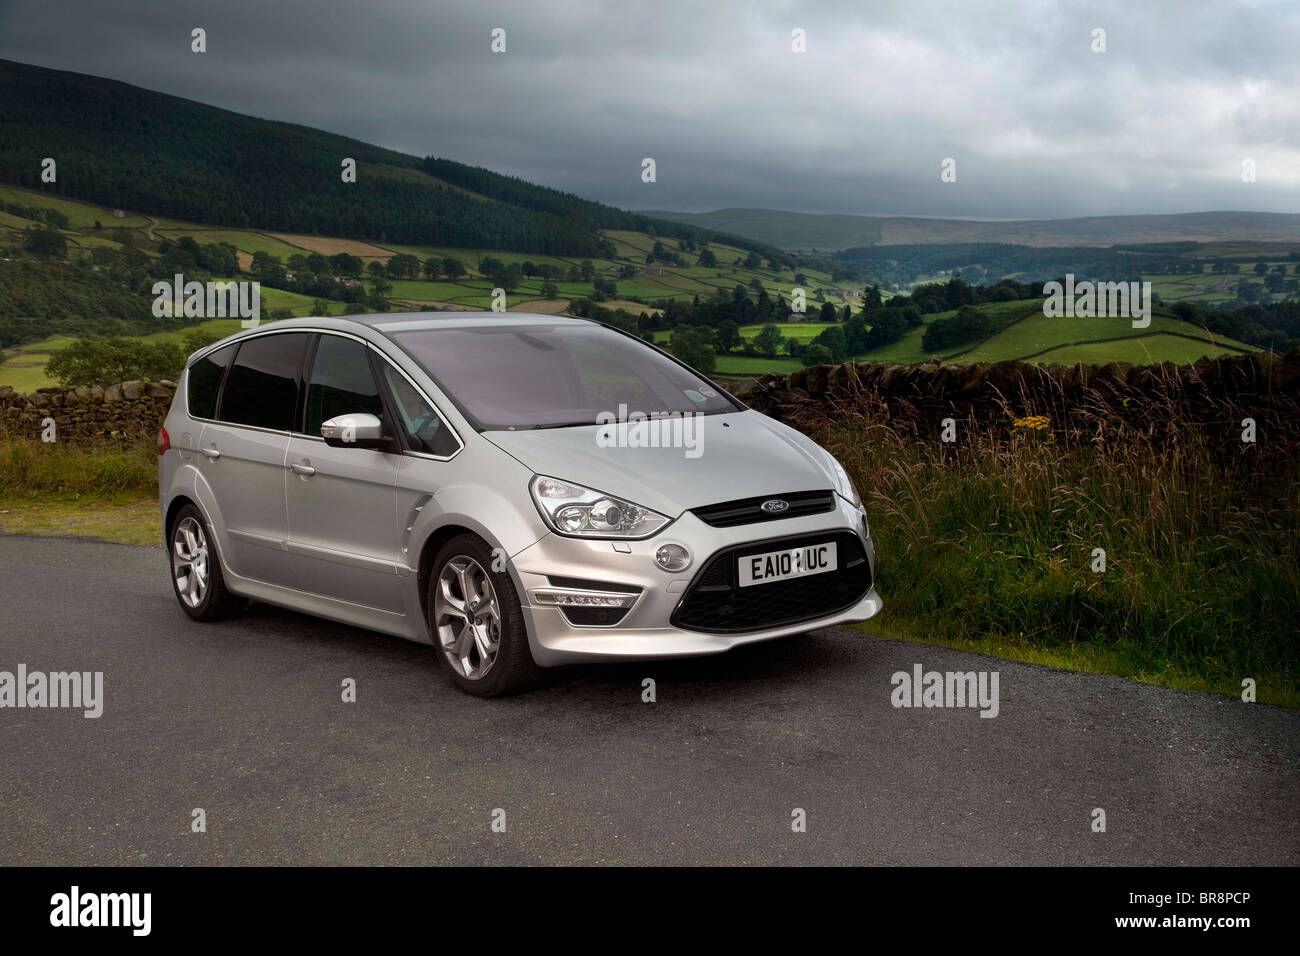 Ford S Max in the Dales region of Yorkshire England UK - Stock Image